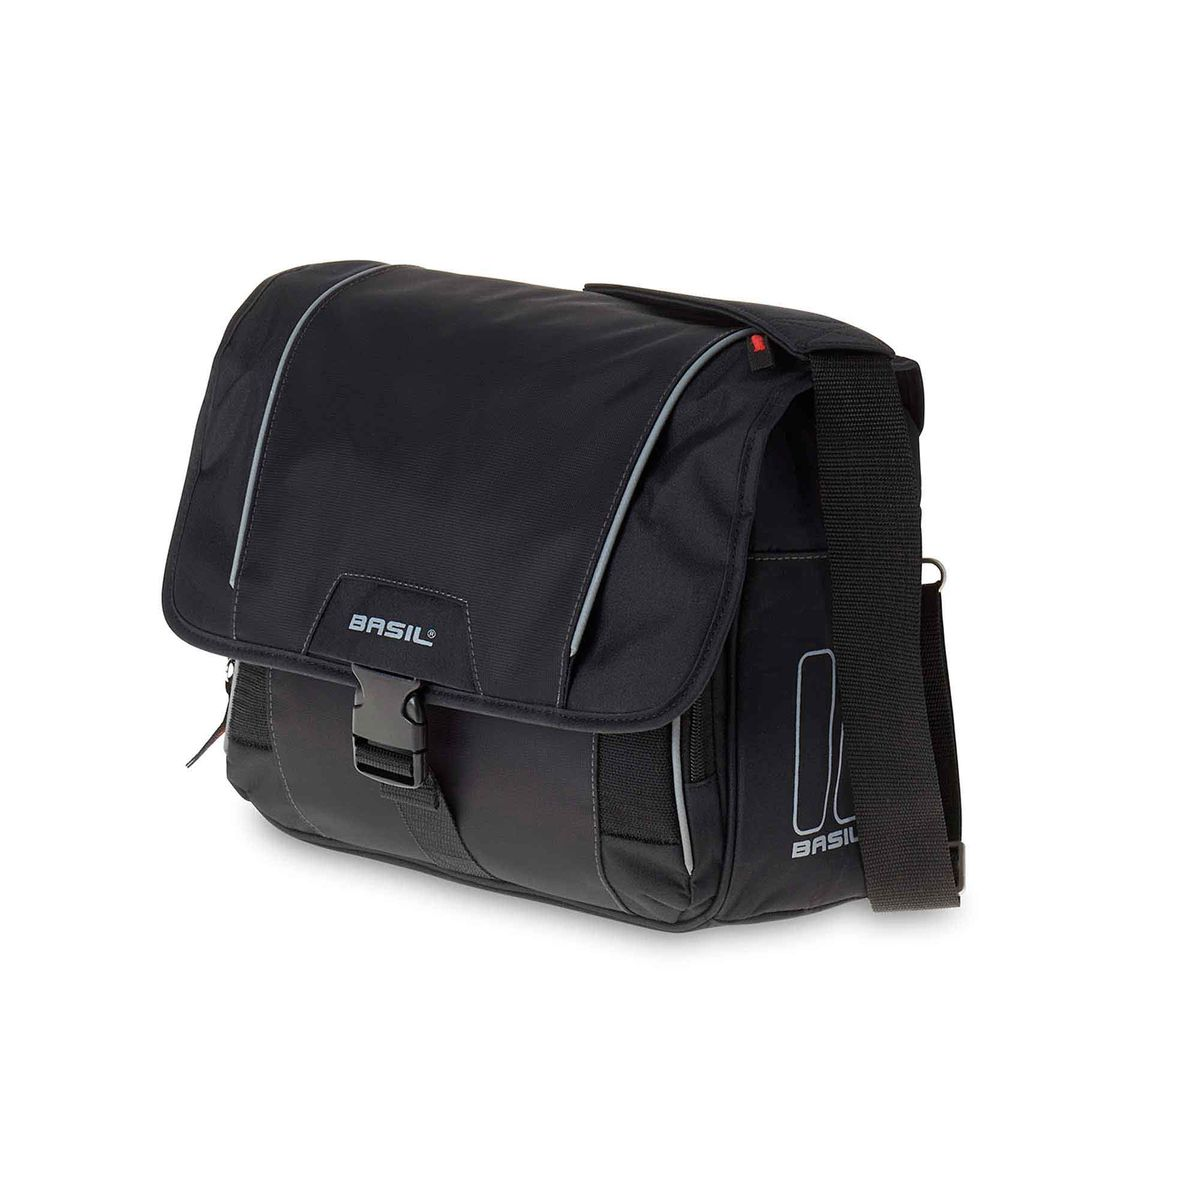 SPORT DESIGN FRONT BAG handlebar bag incl. KLICKfix adapter plate